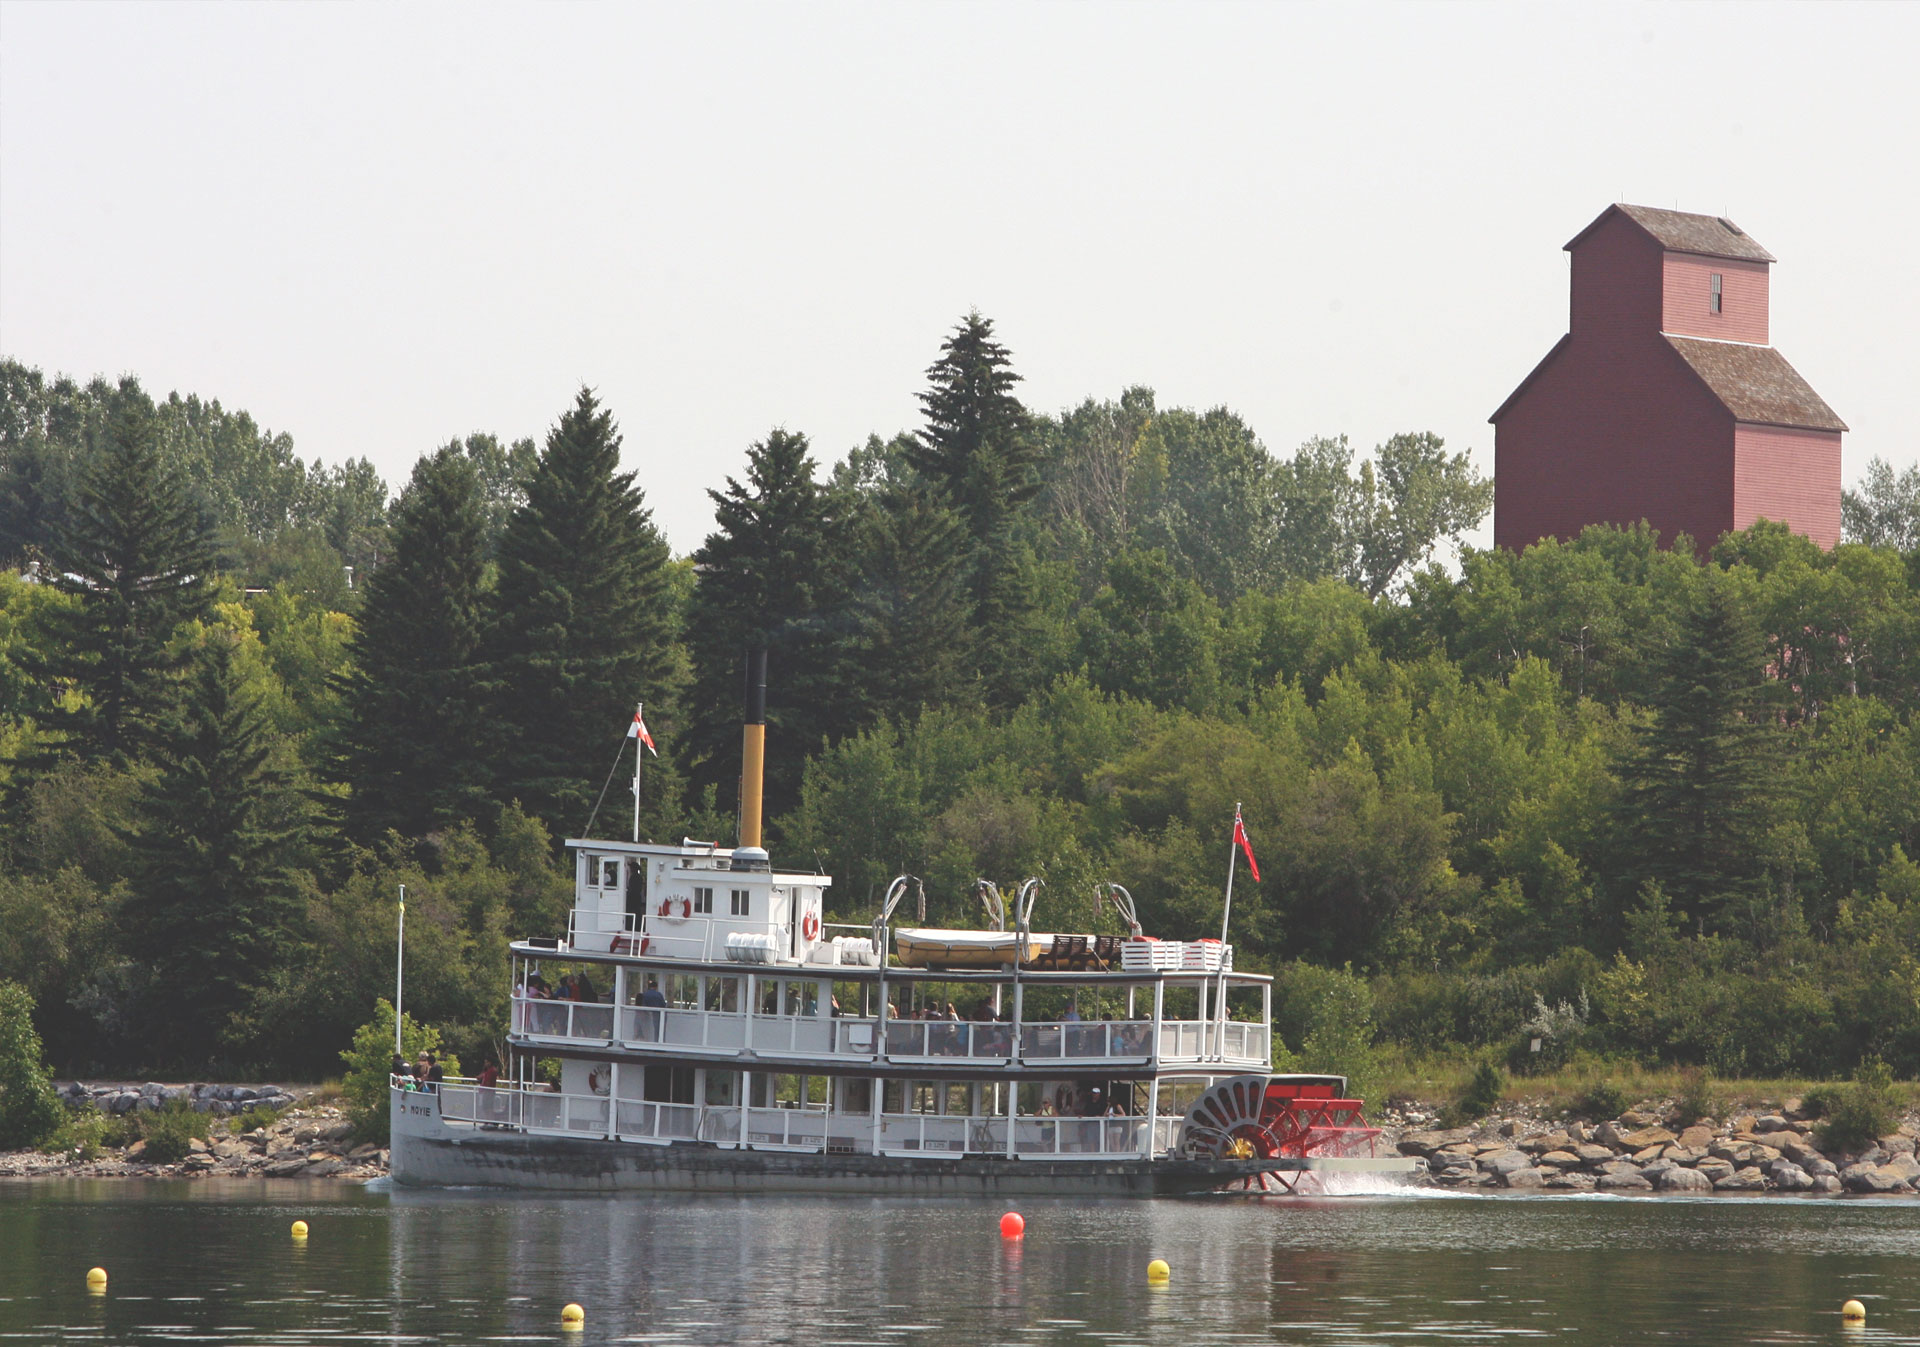 S.S. Moyie at Heritage Park